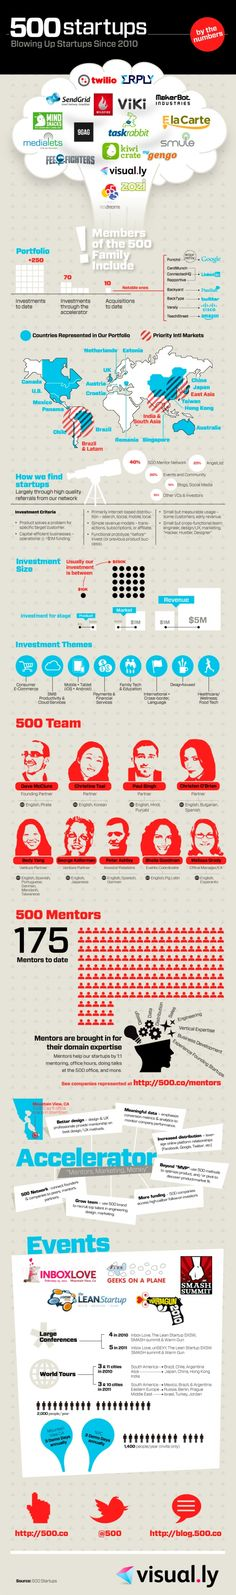 Everything You Ever Wanted To Know About 500 Startups: The Infographic